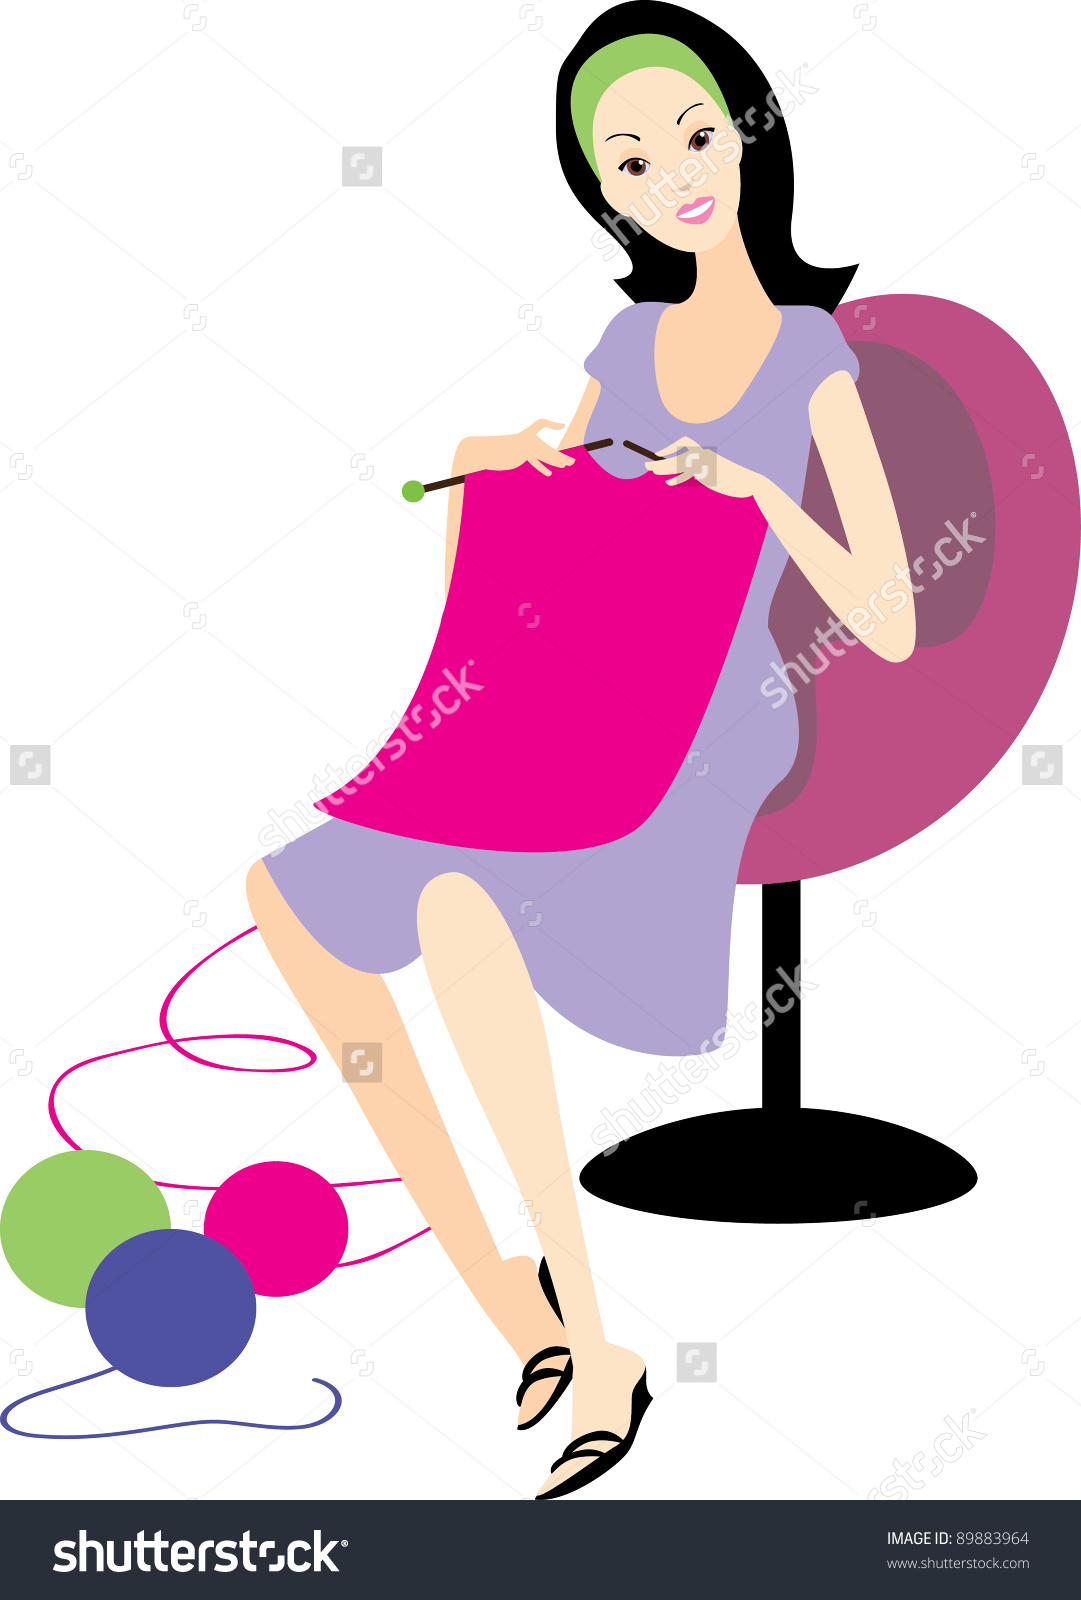 Woman Knitting Clipart : Knitting women clipart clipground